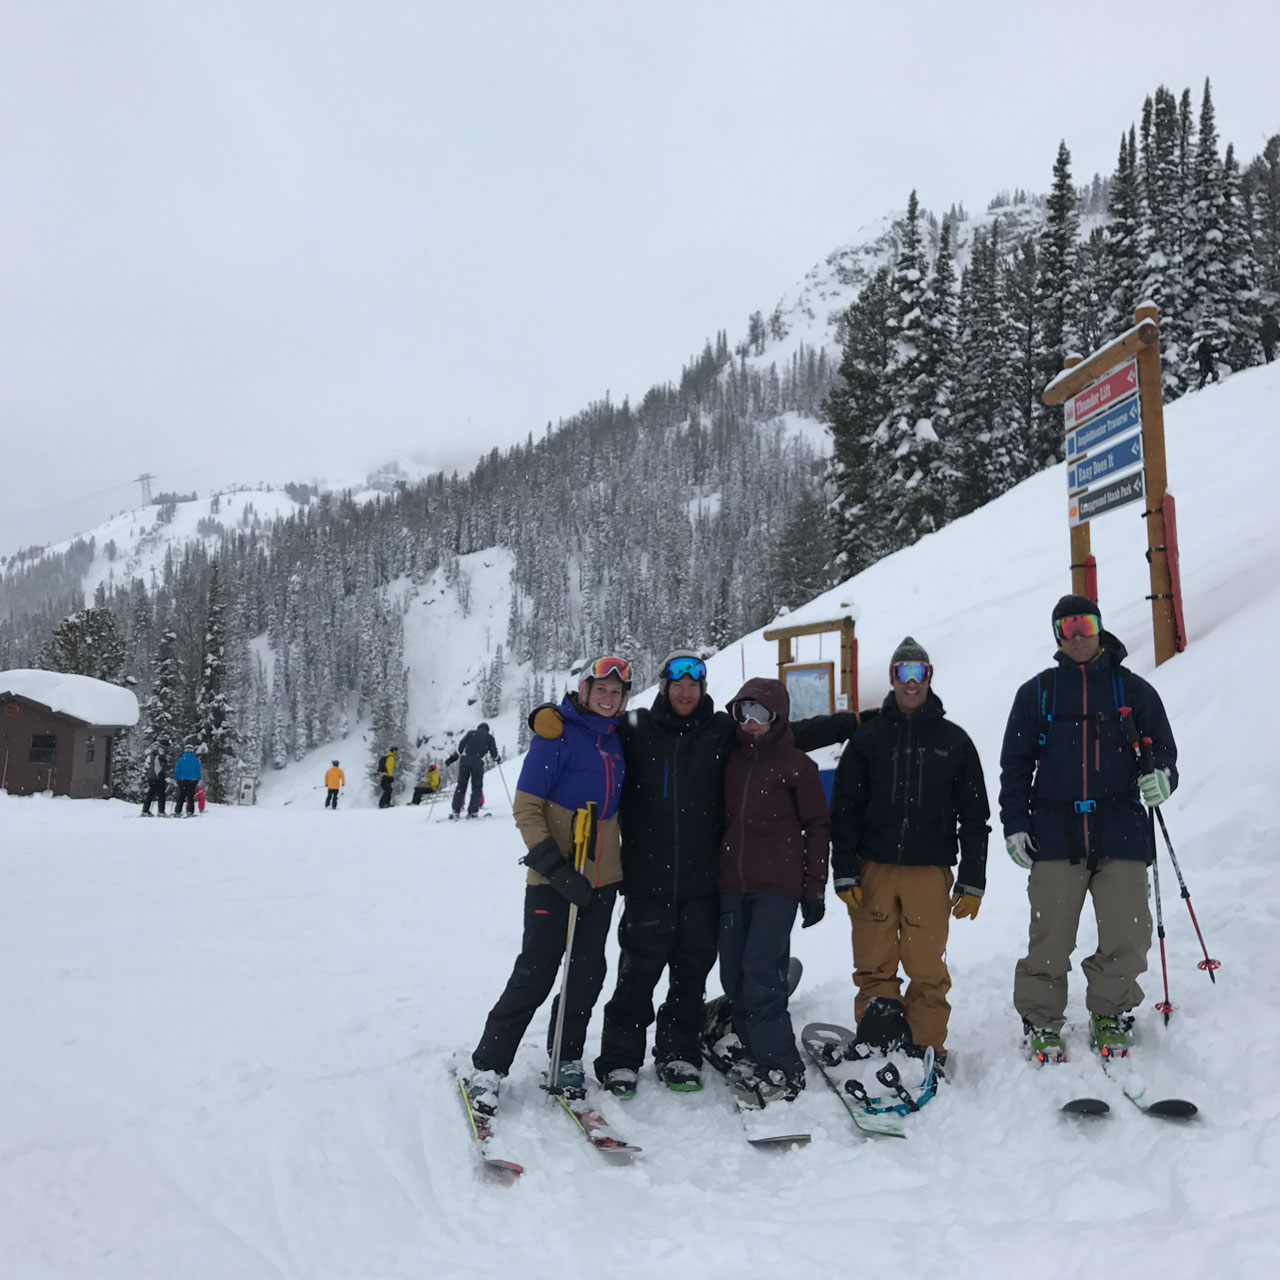 Skiing in Jackson Hole, Wyoming